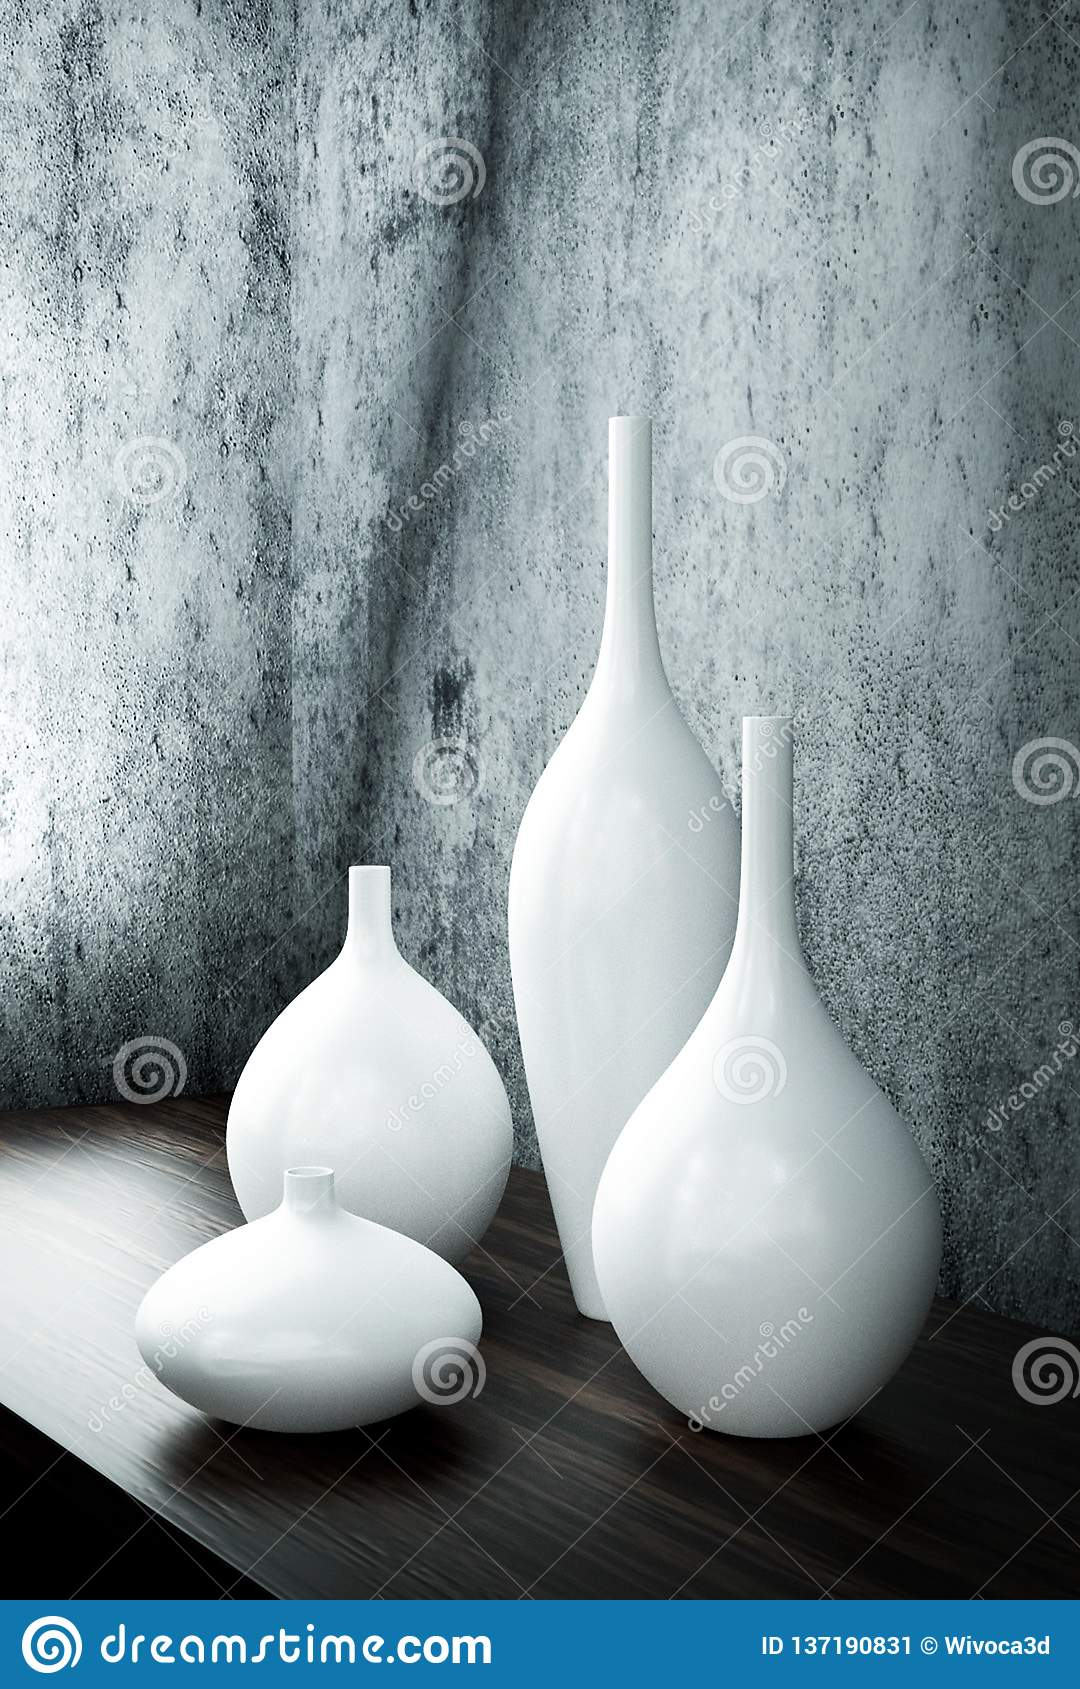 Porcelain White Decor Vases Stock Illustration for Vase and Bowl Wall Decor (Image 17 of 30)